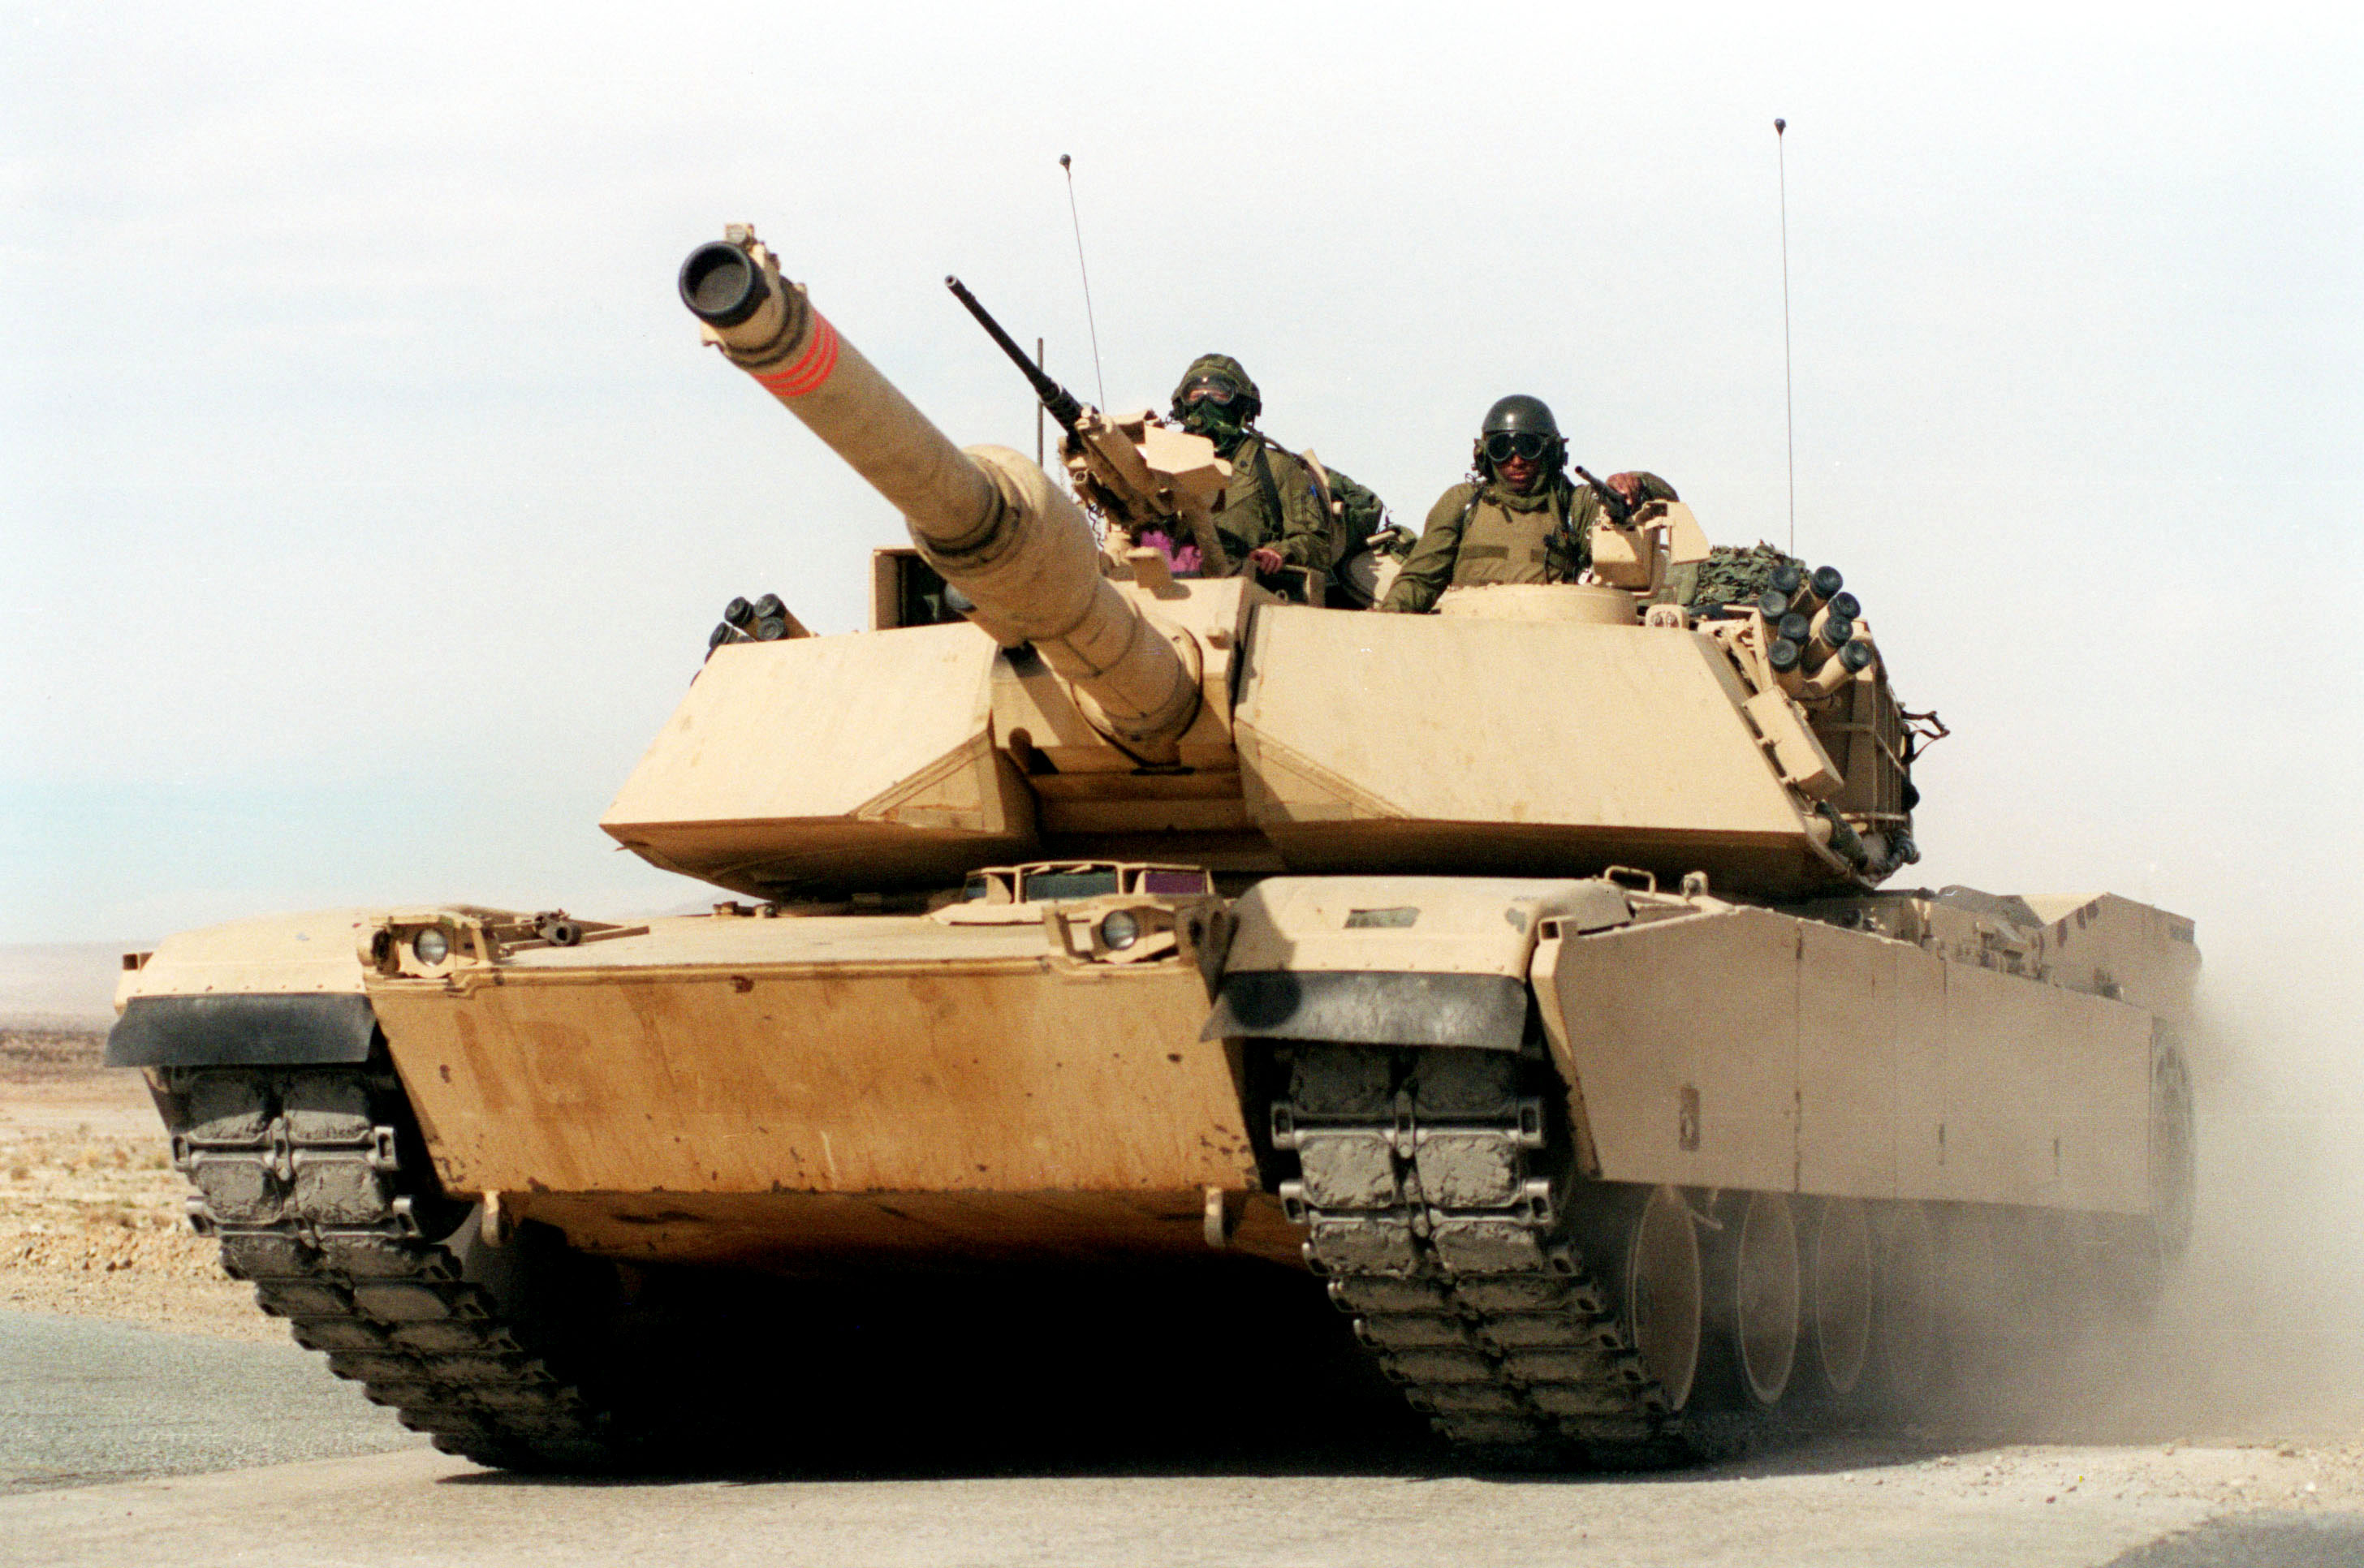 A U.S. Marine Corps M-1A1 Abrams main battle tank races across the desert at the Marine Corps Air Ground Combat Center, Twentynine Palms, Calif., on Jan. 27, 1998. These tankers from the 2nd Tank Battalion are taking part in Combined Arms Exercise 3-98. DoD photo by Lance Cpl. W. Makela, U.S. Marine Corps.